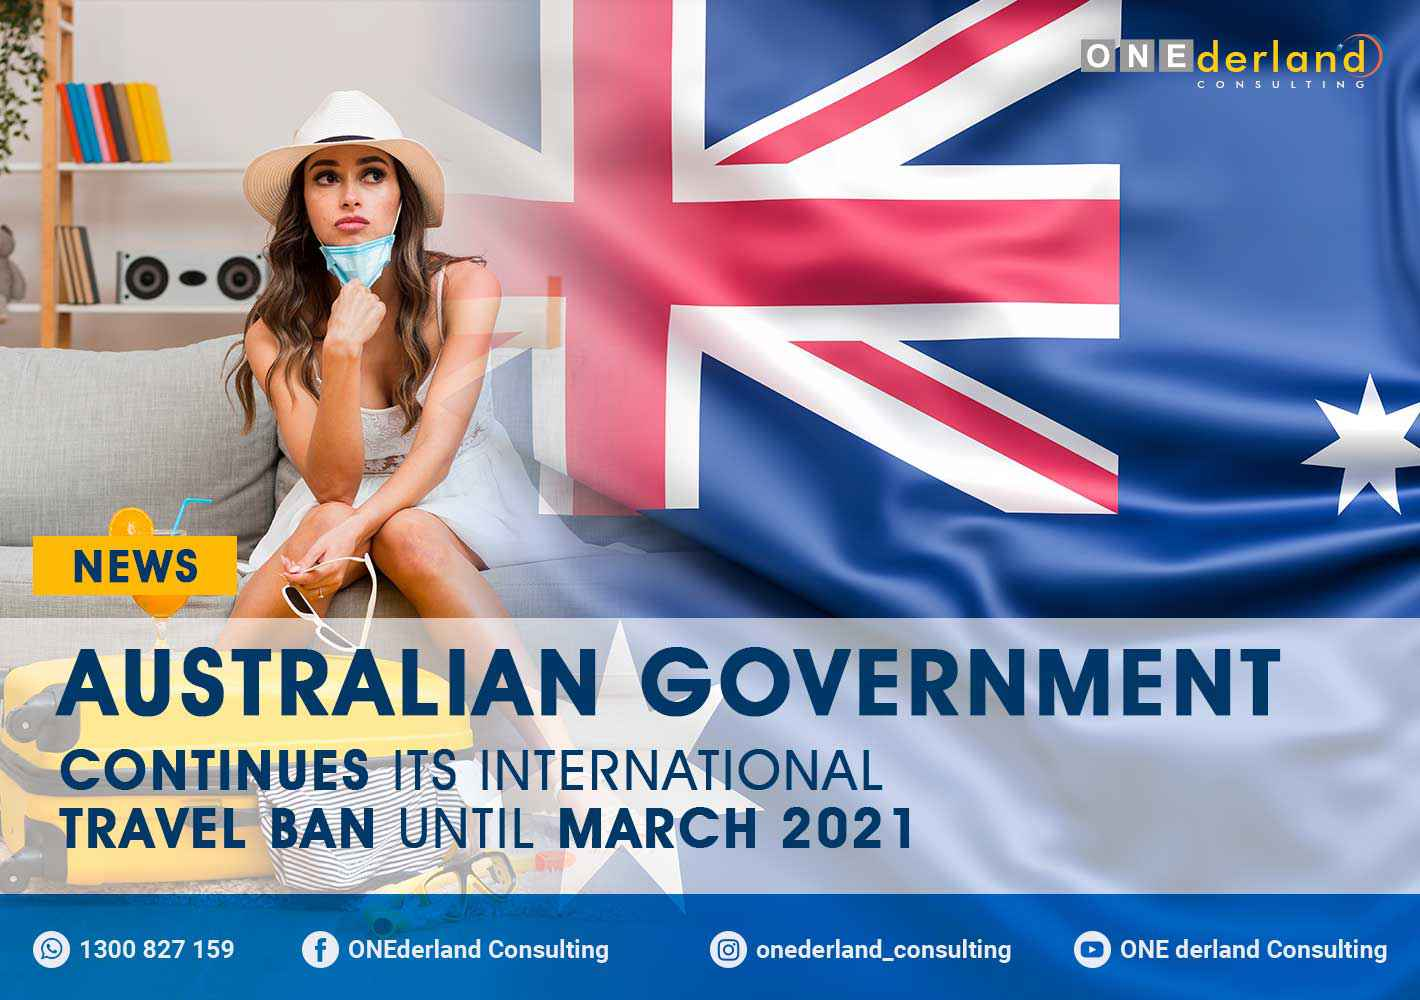 Australian Government Continues Its International Travel Ban Until March 2021